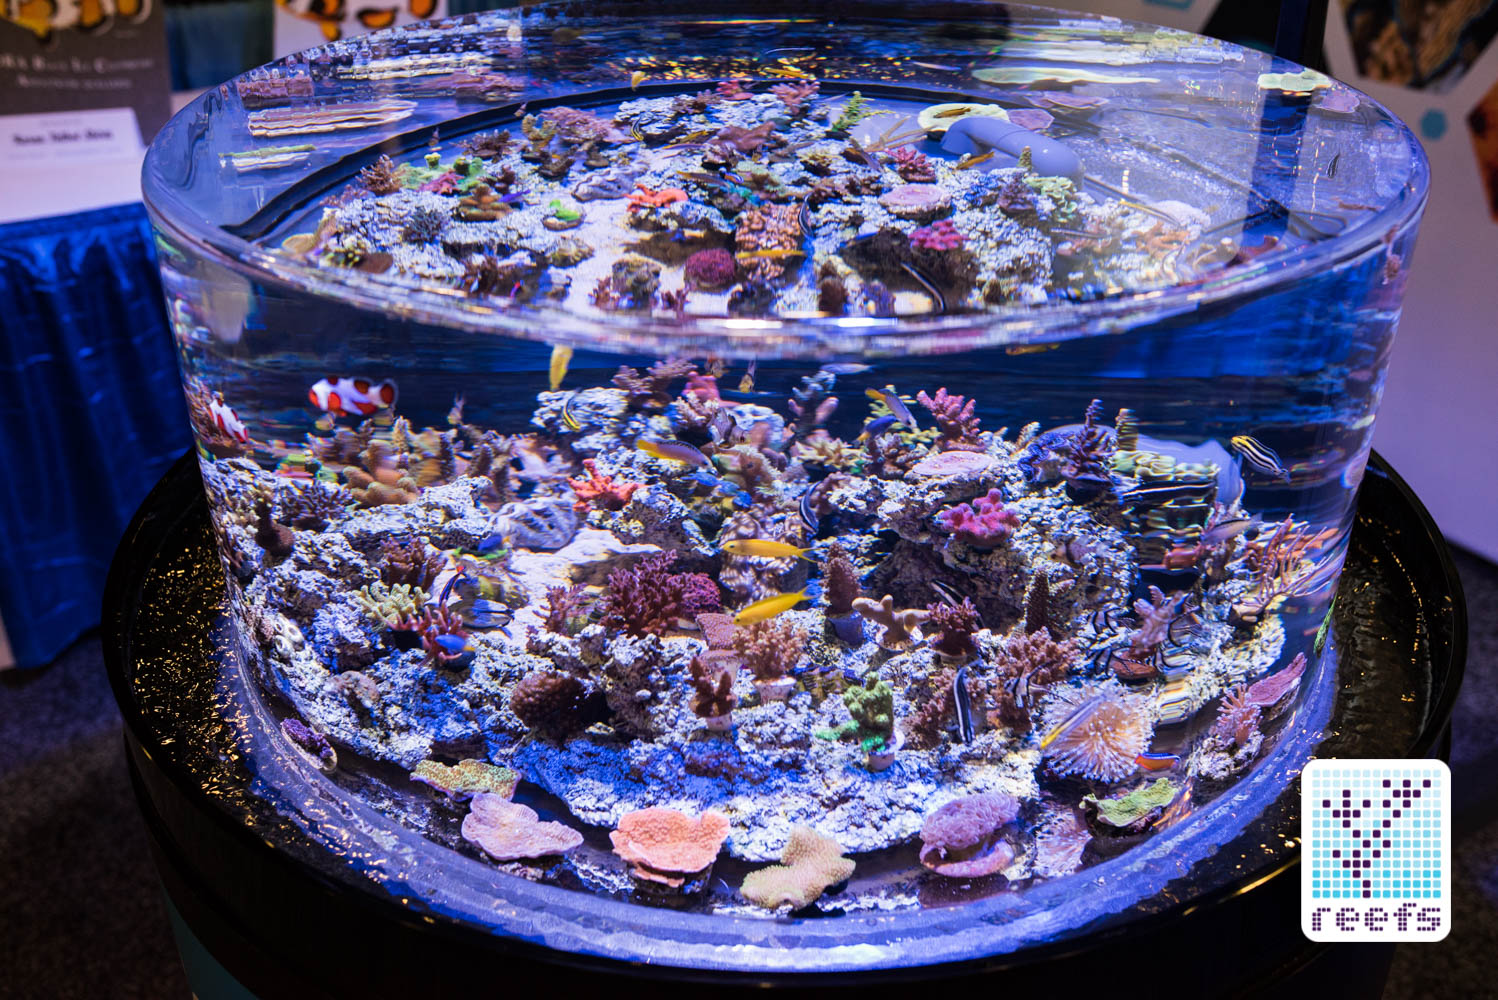 ORA display tank, featuring captive bred corals and fish